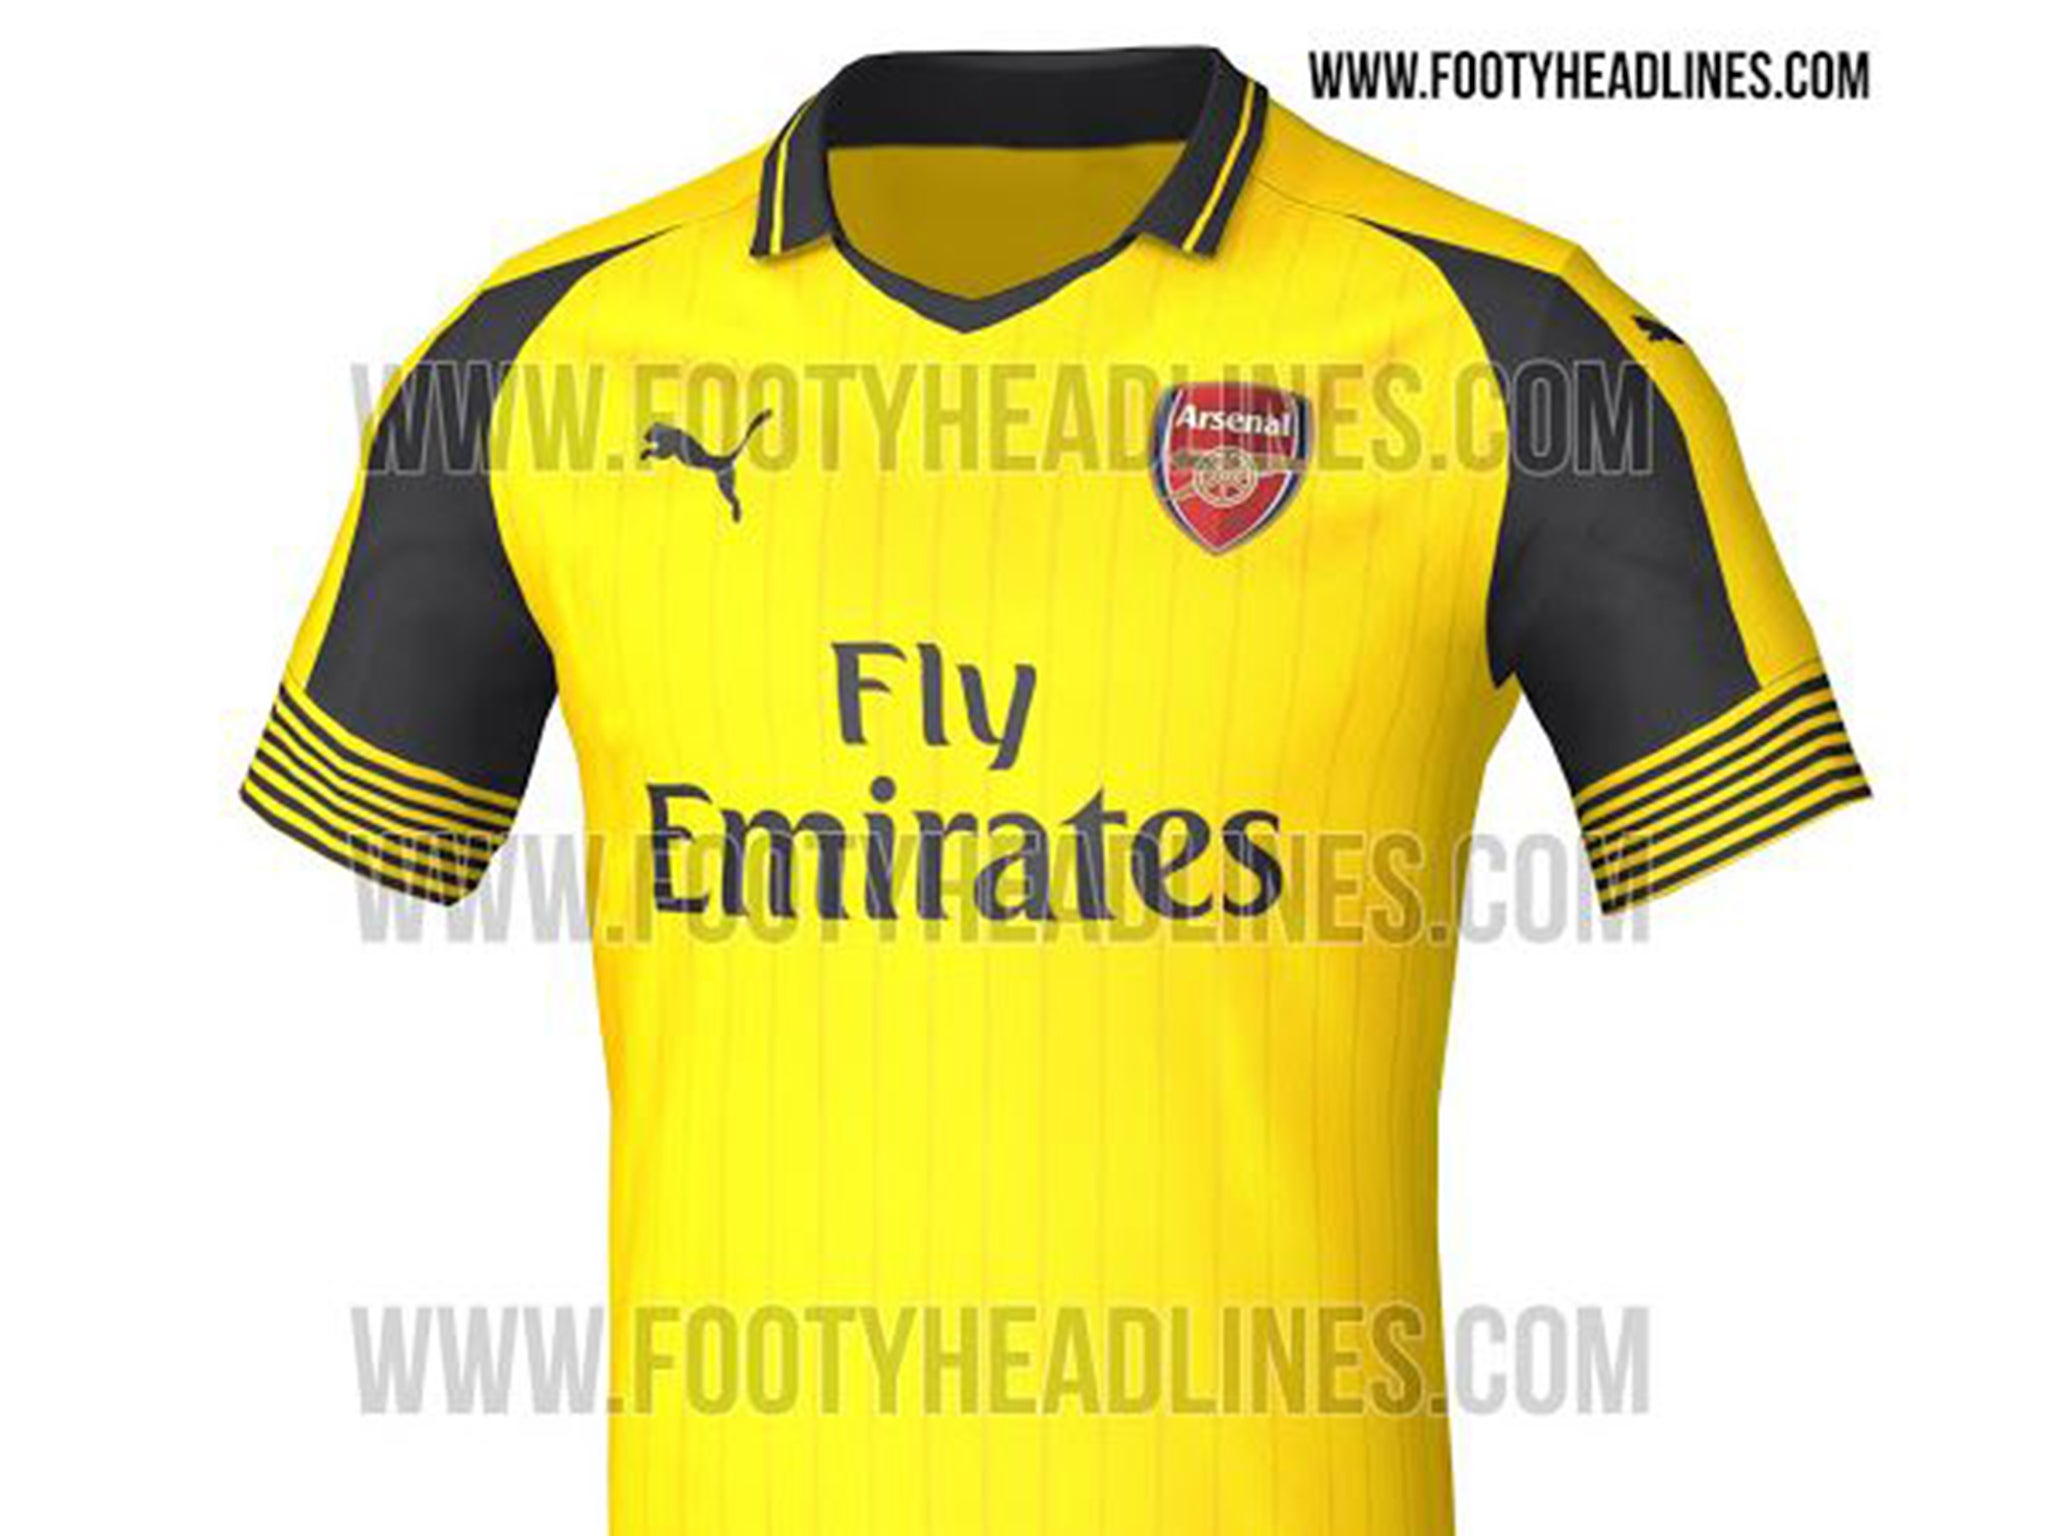 official photos d2f33 ab24f Arsenal away kit leaked: Pictures emerge of bright yellow ...